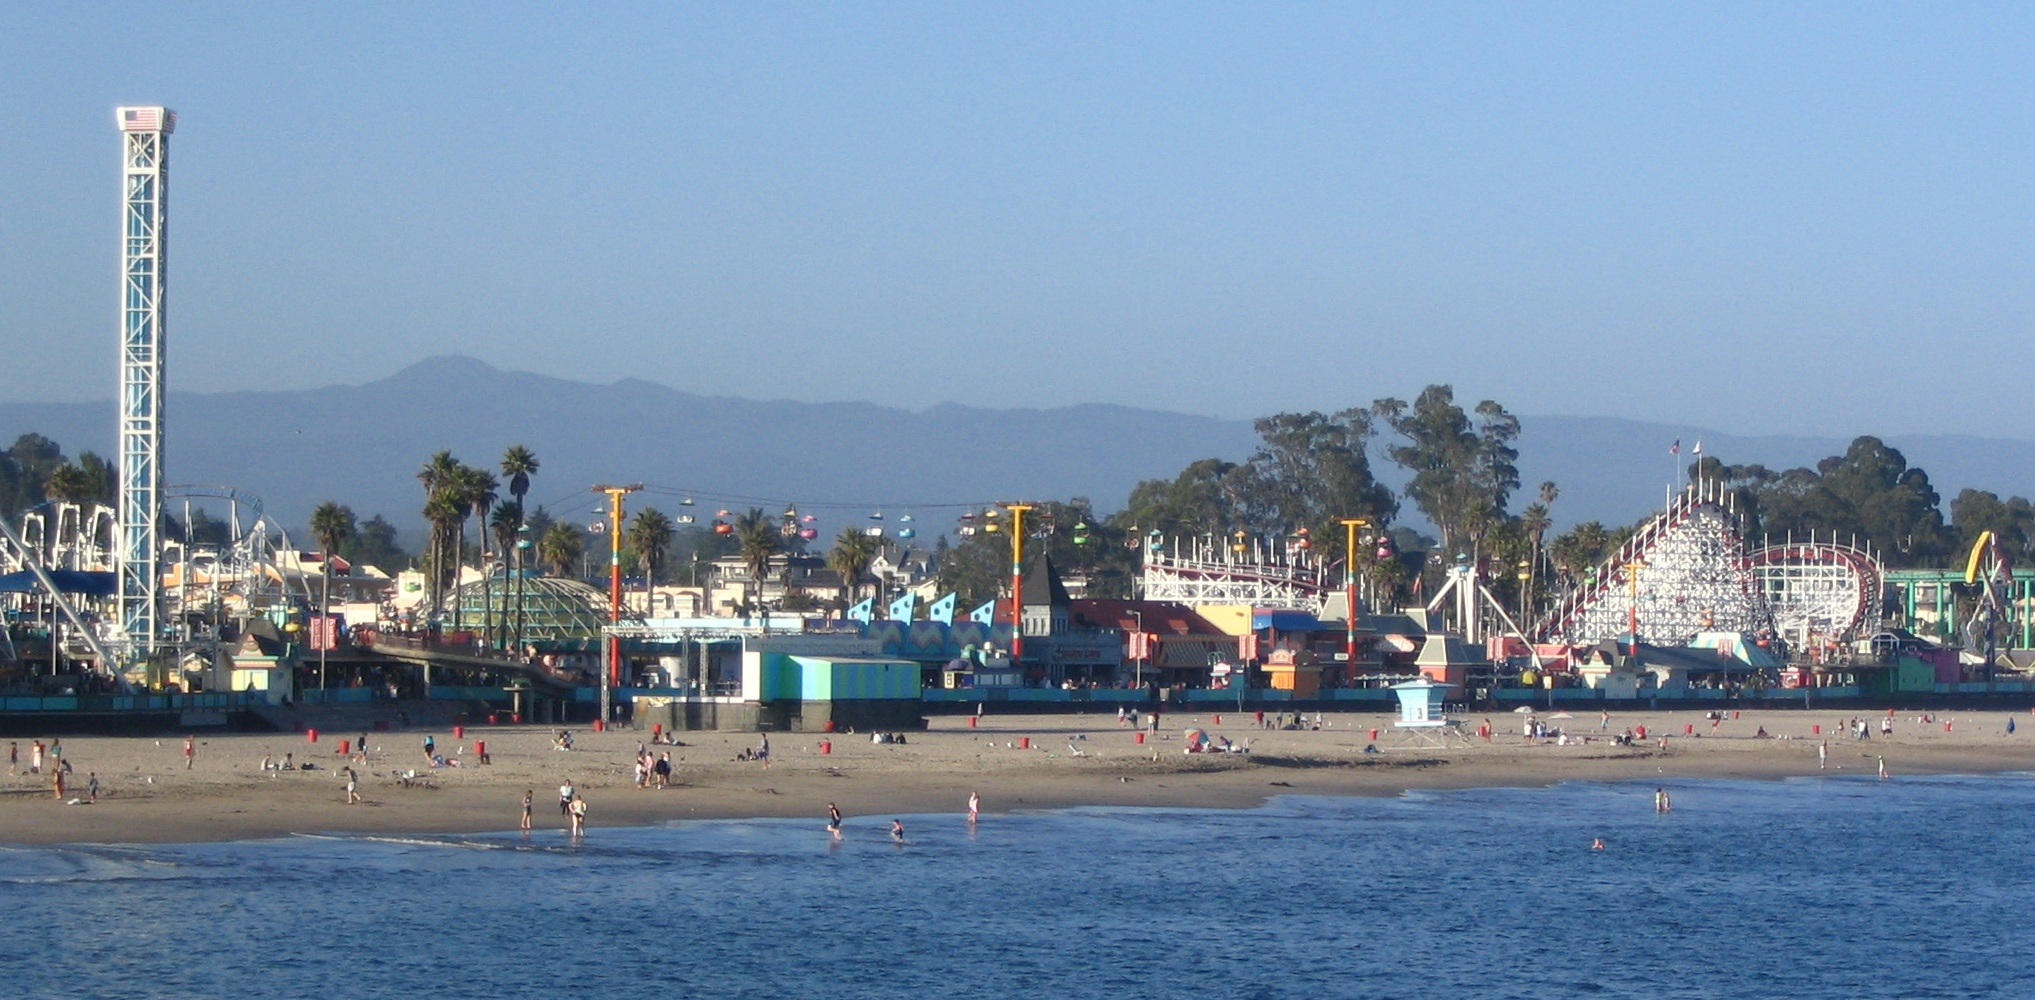 santa cruz california facial jpg 422x640